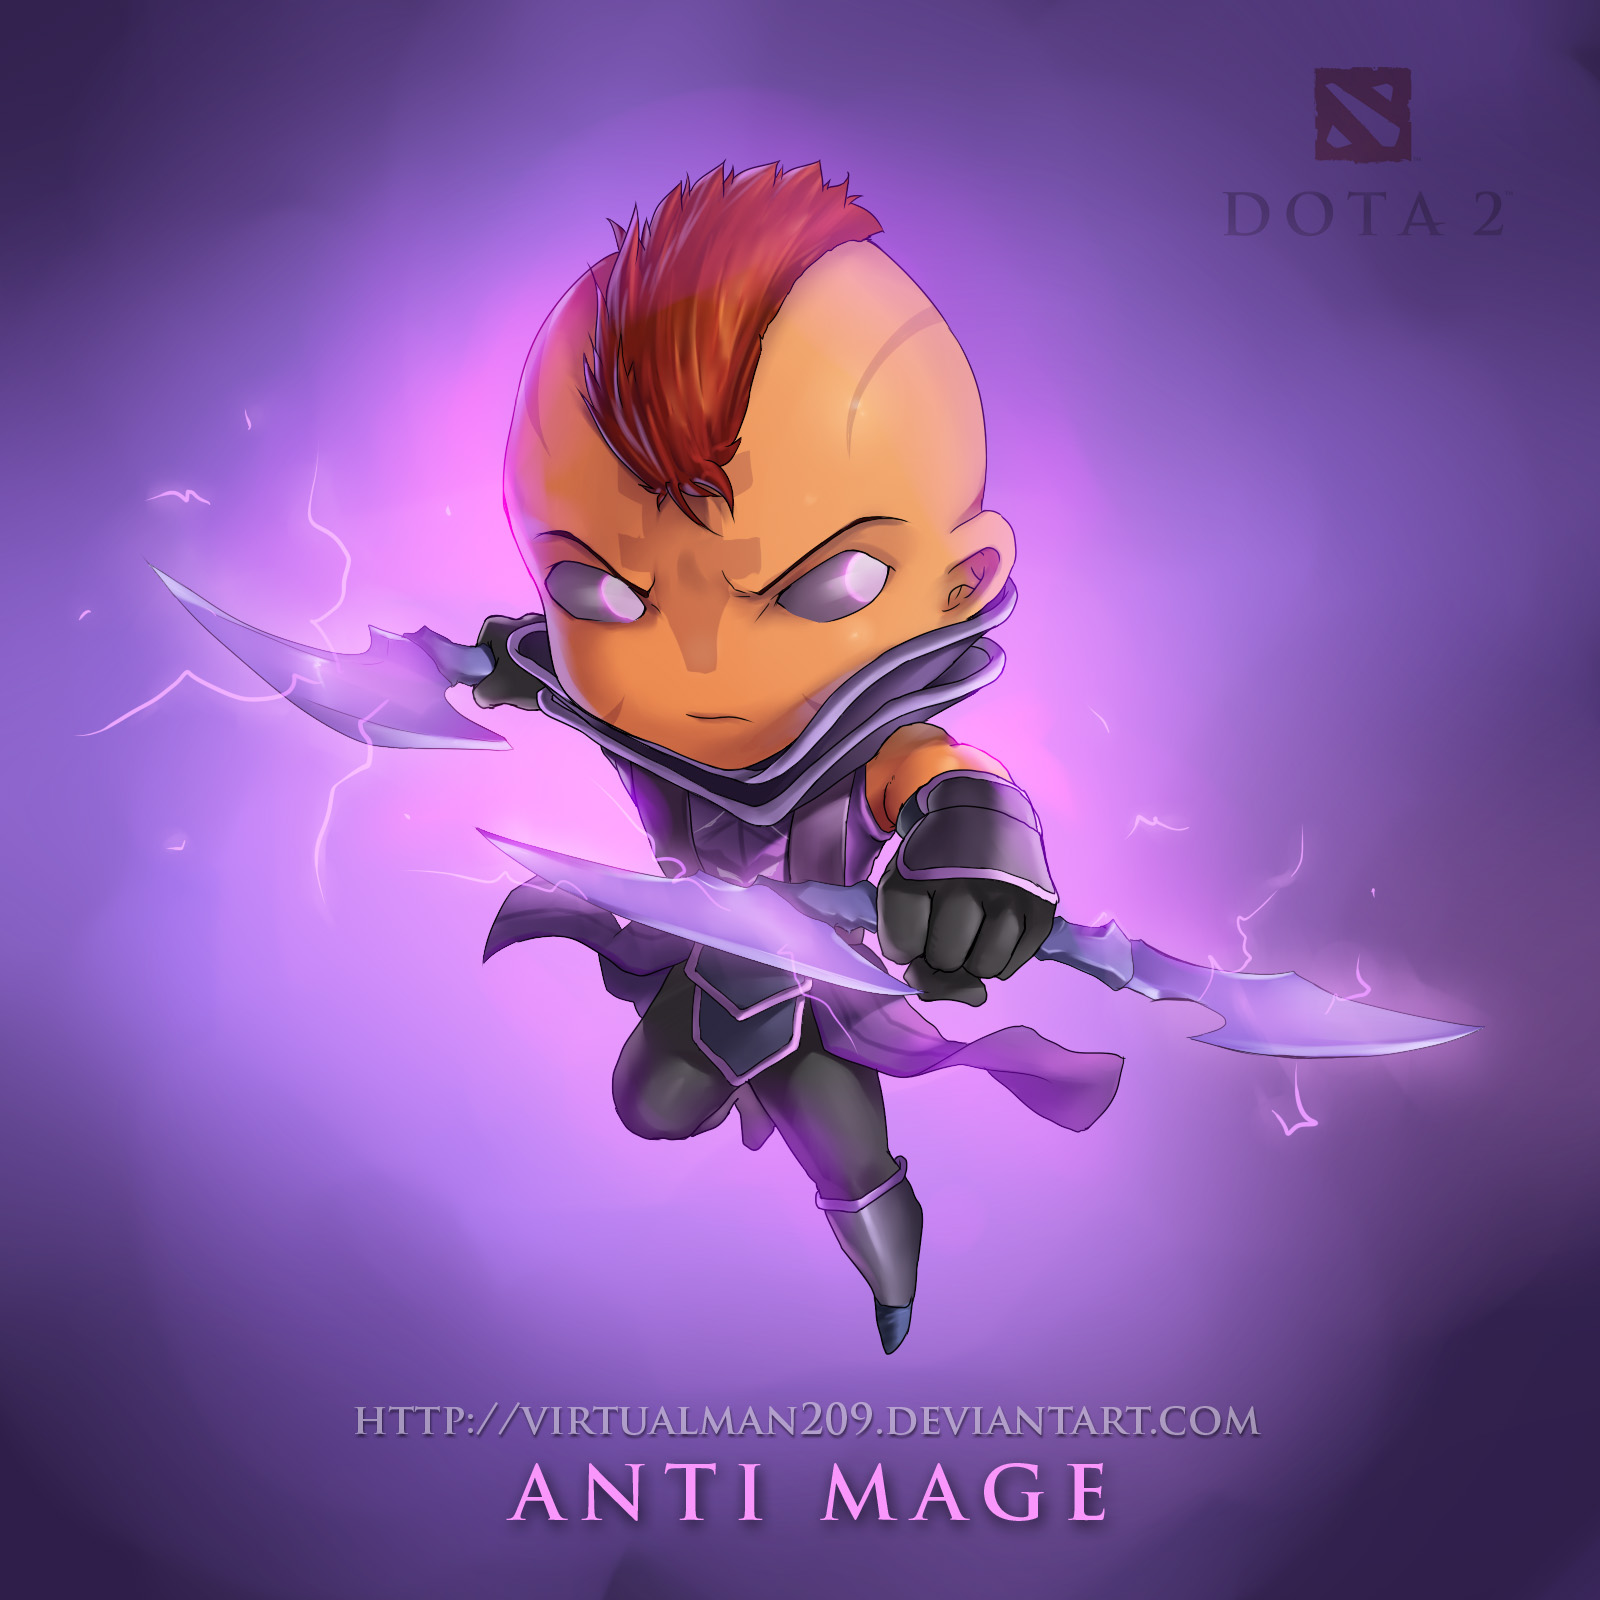 Anti-Mage Wallpapers Dota 2 HD Wallpapers #5